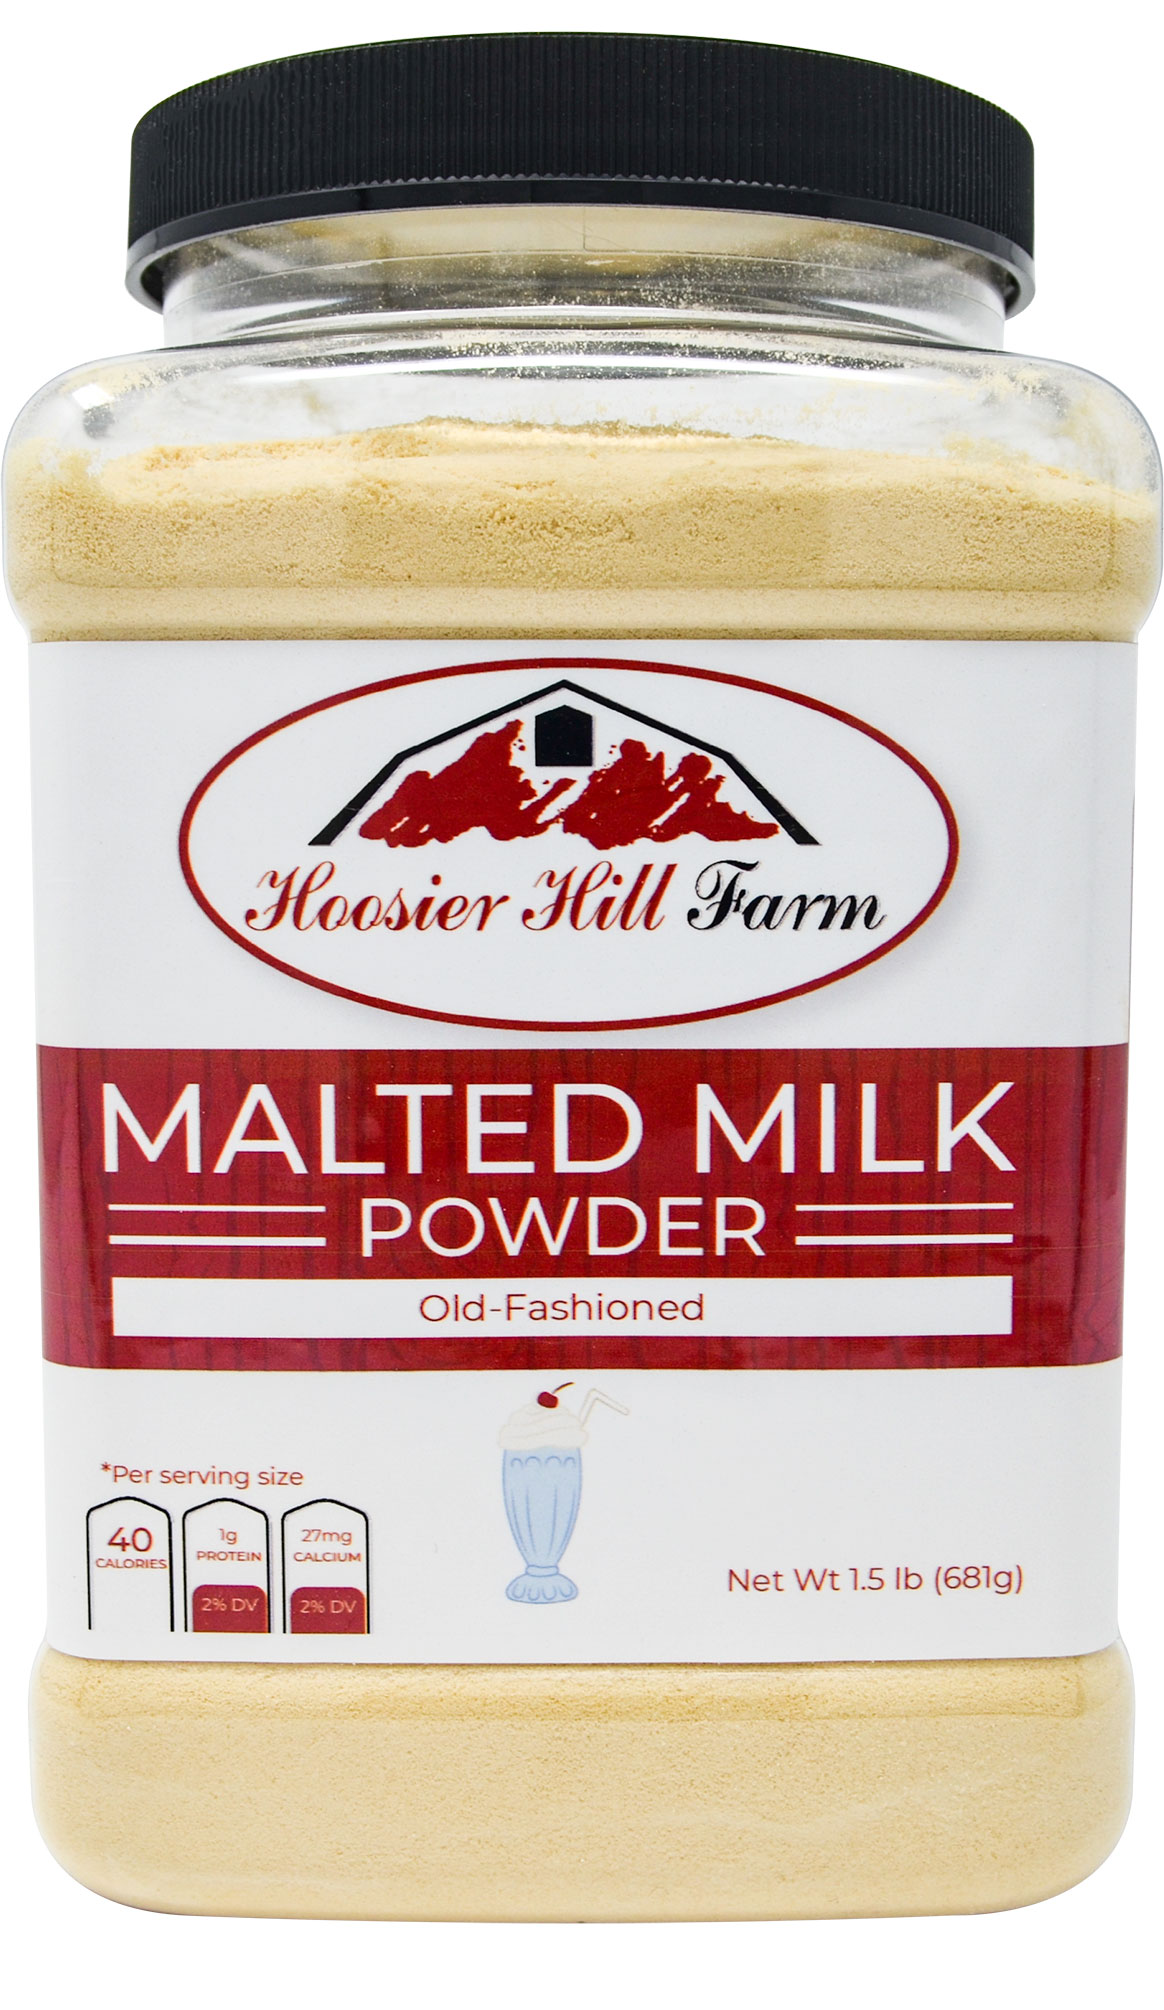 Old-fashioned Malted Milk Powder by Hoosier Hill Farm, 1.5 lbs.